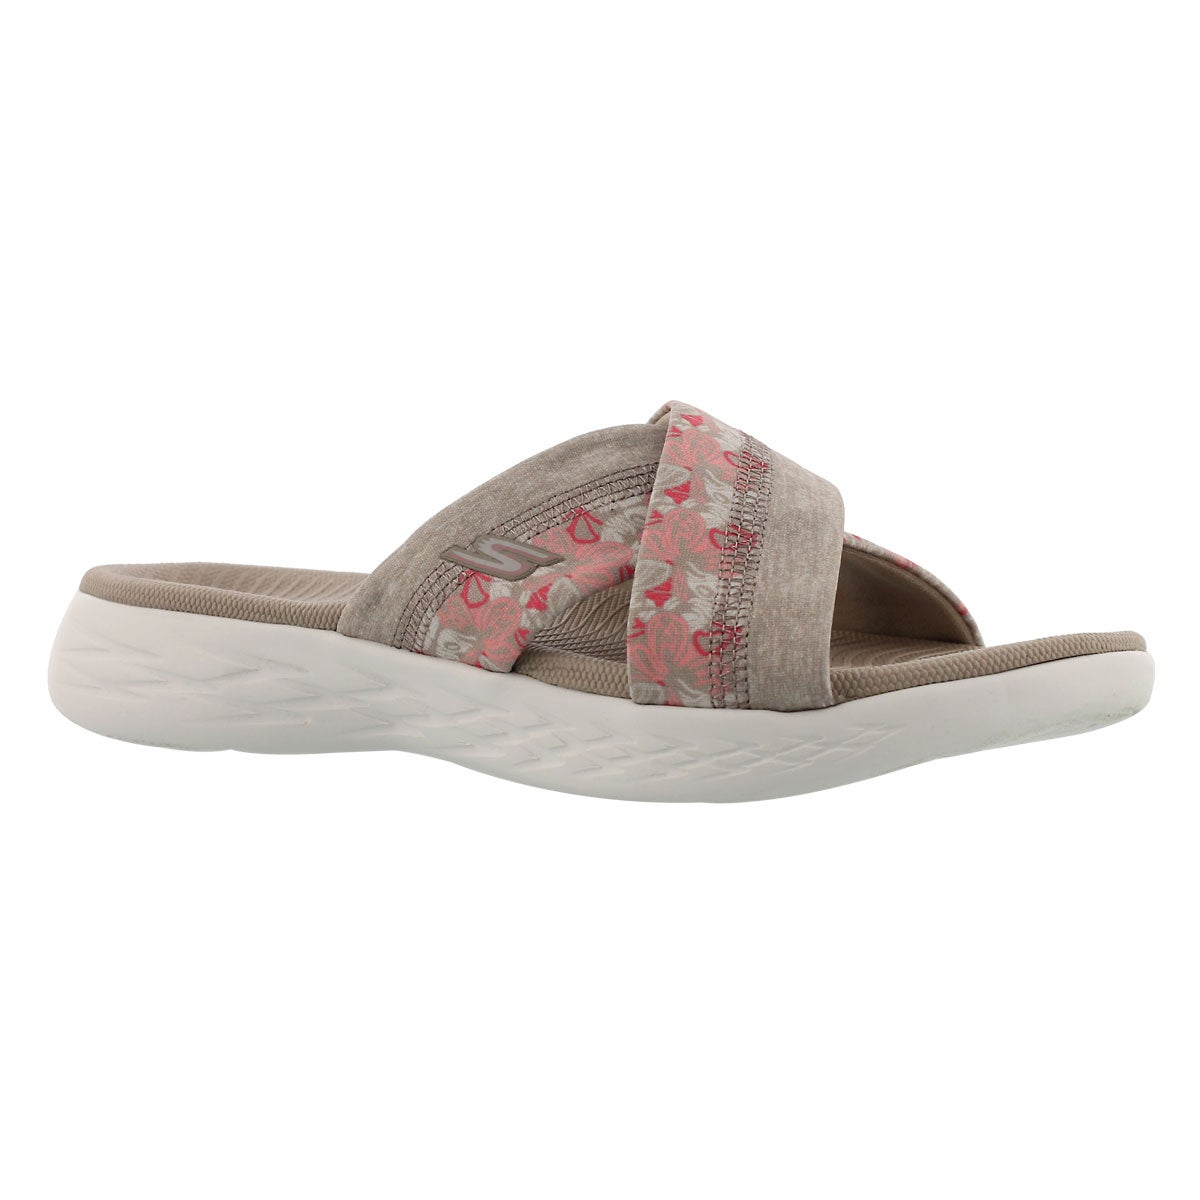 Women's ON-THE-GO 600 MONARCH taupe slide sandals